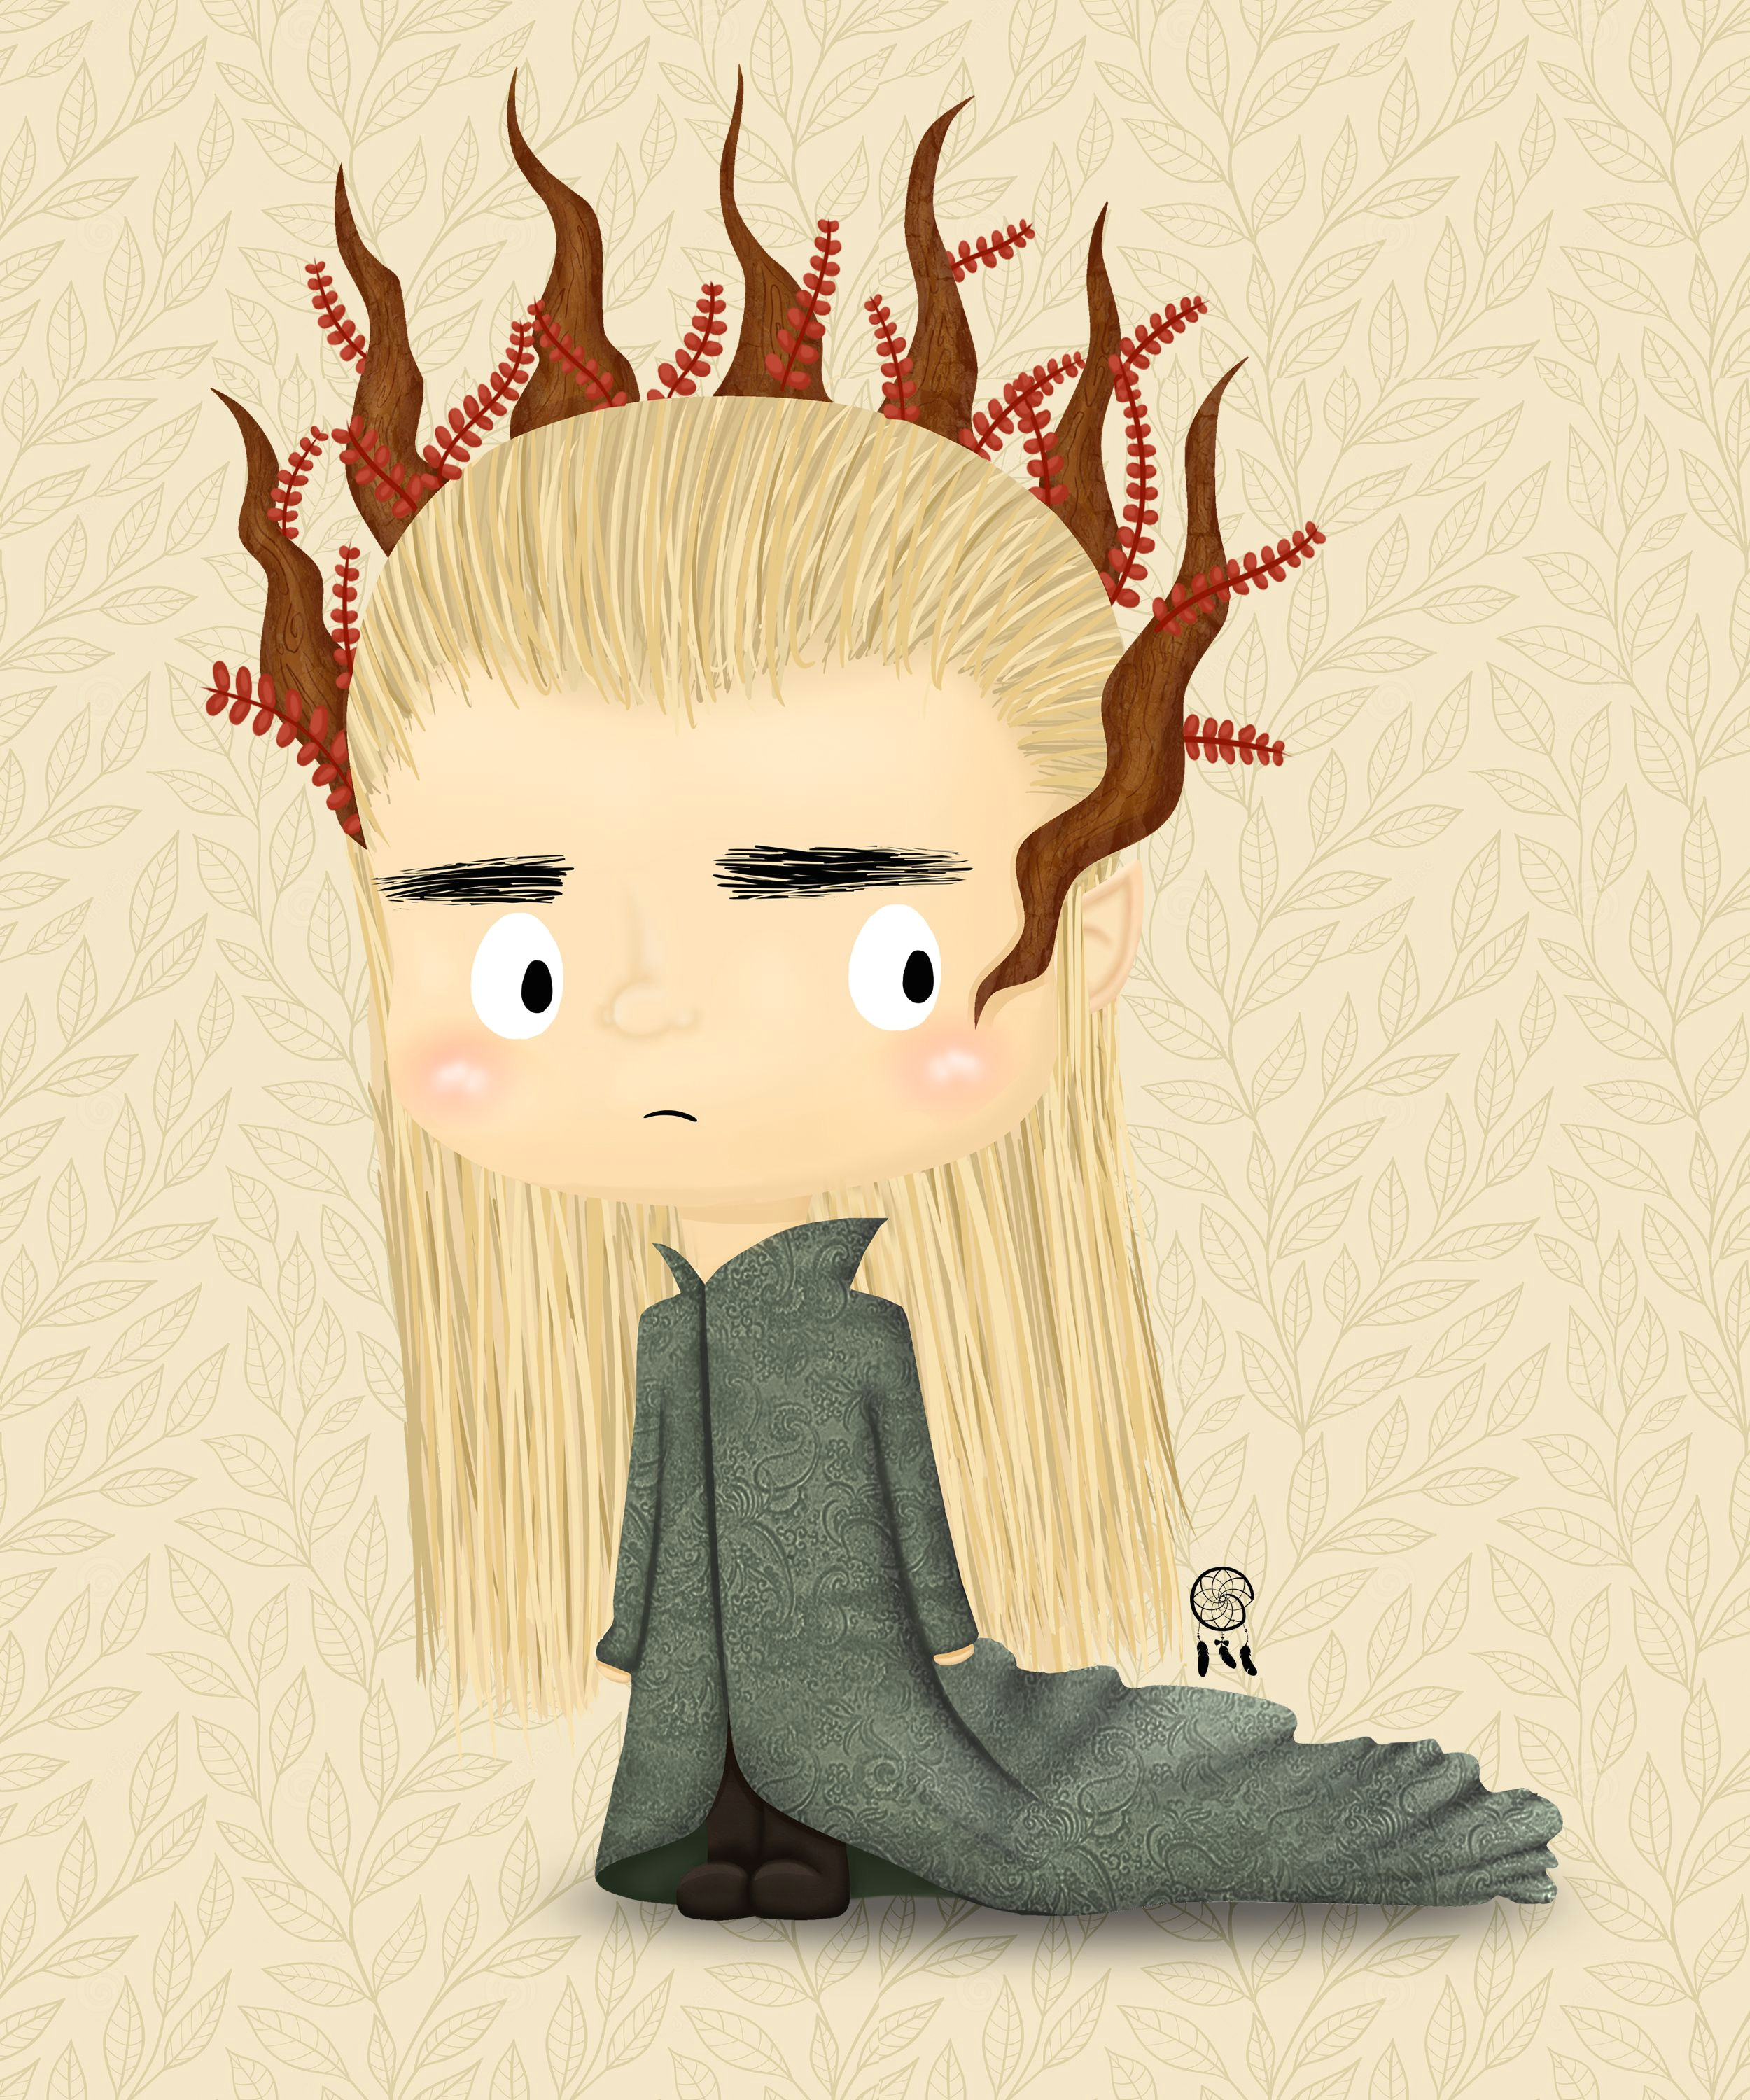 lil thranduil fan arta the hobbit trilogy the elven king of mirkwood chibi cartoon